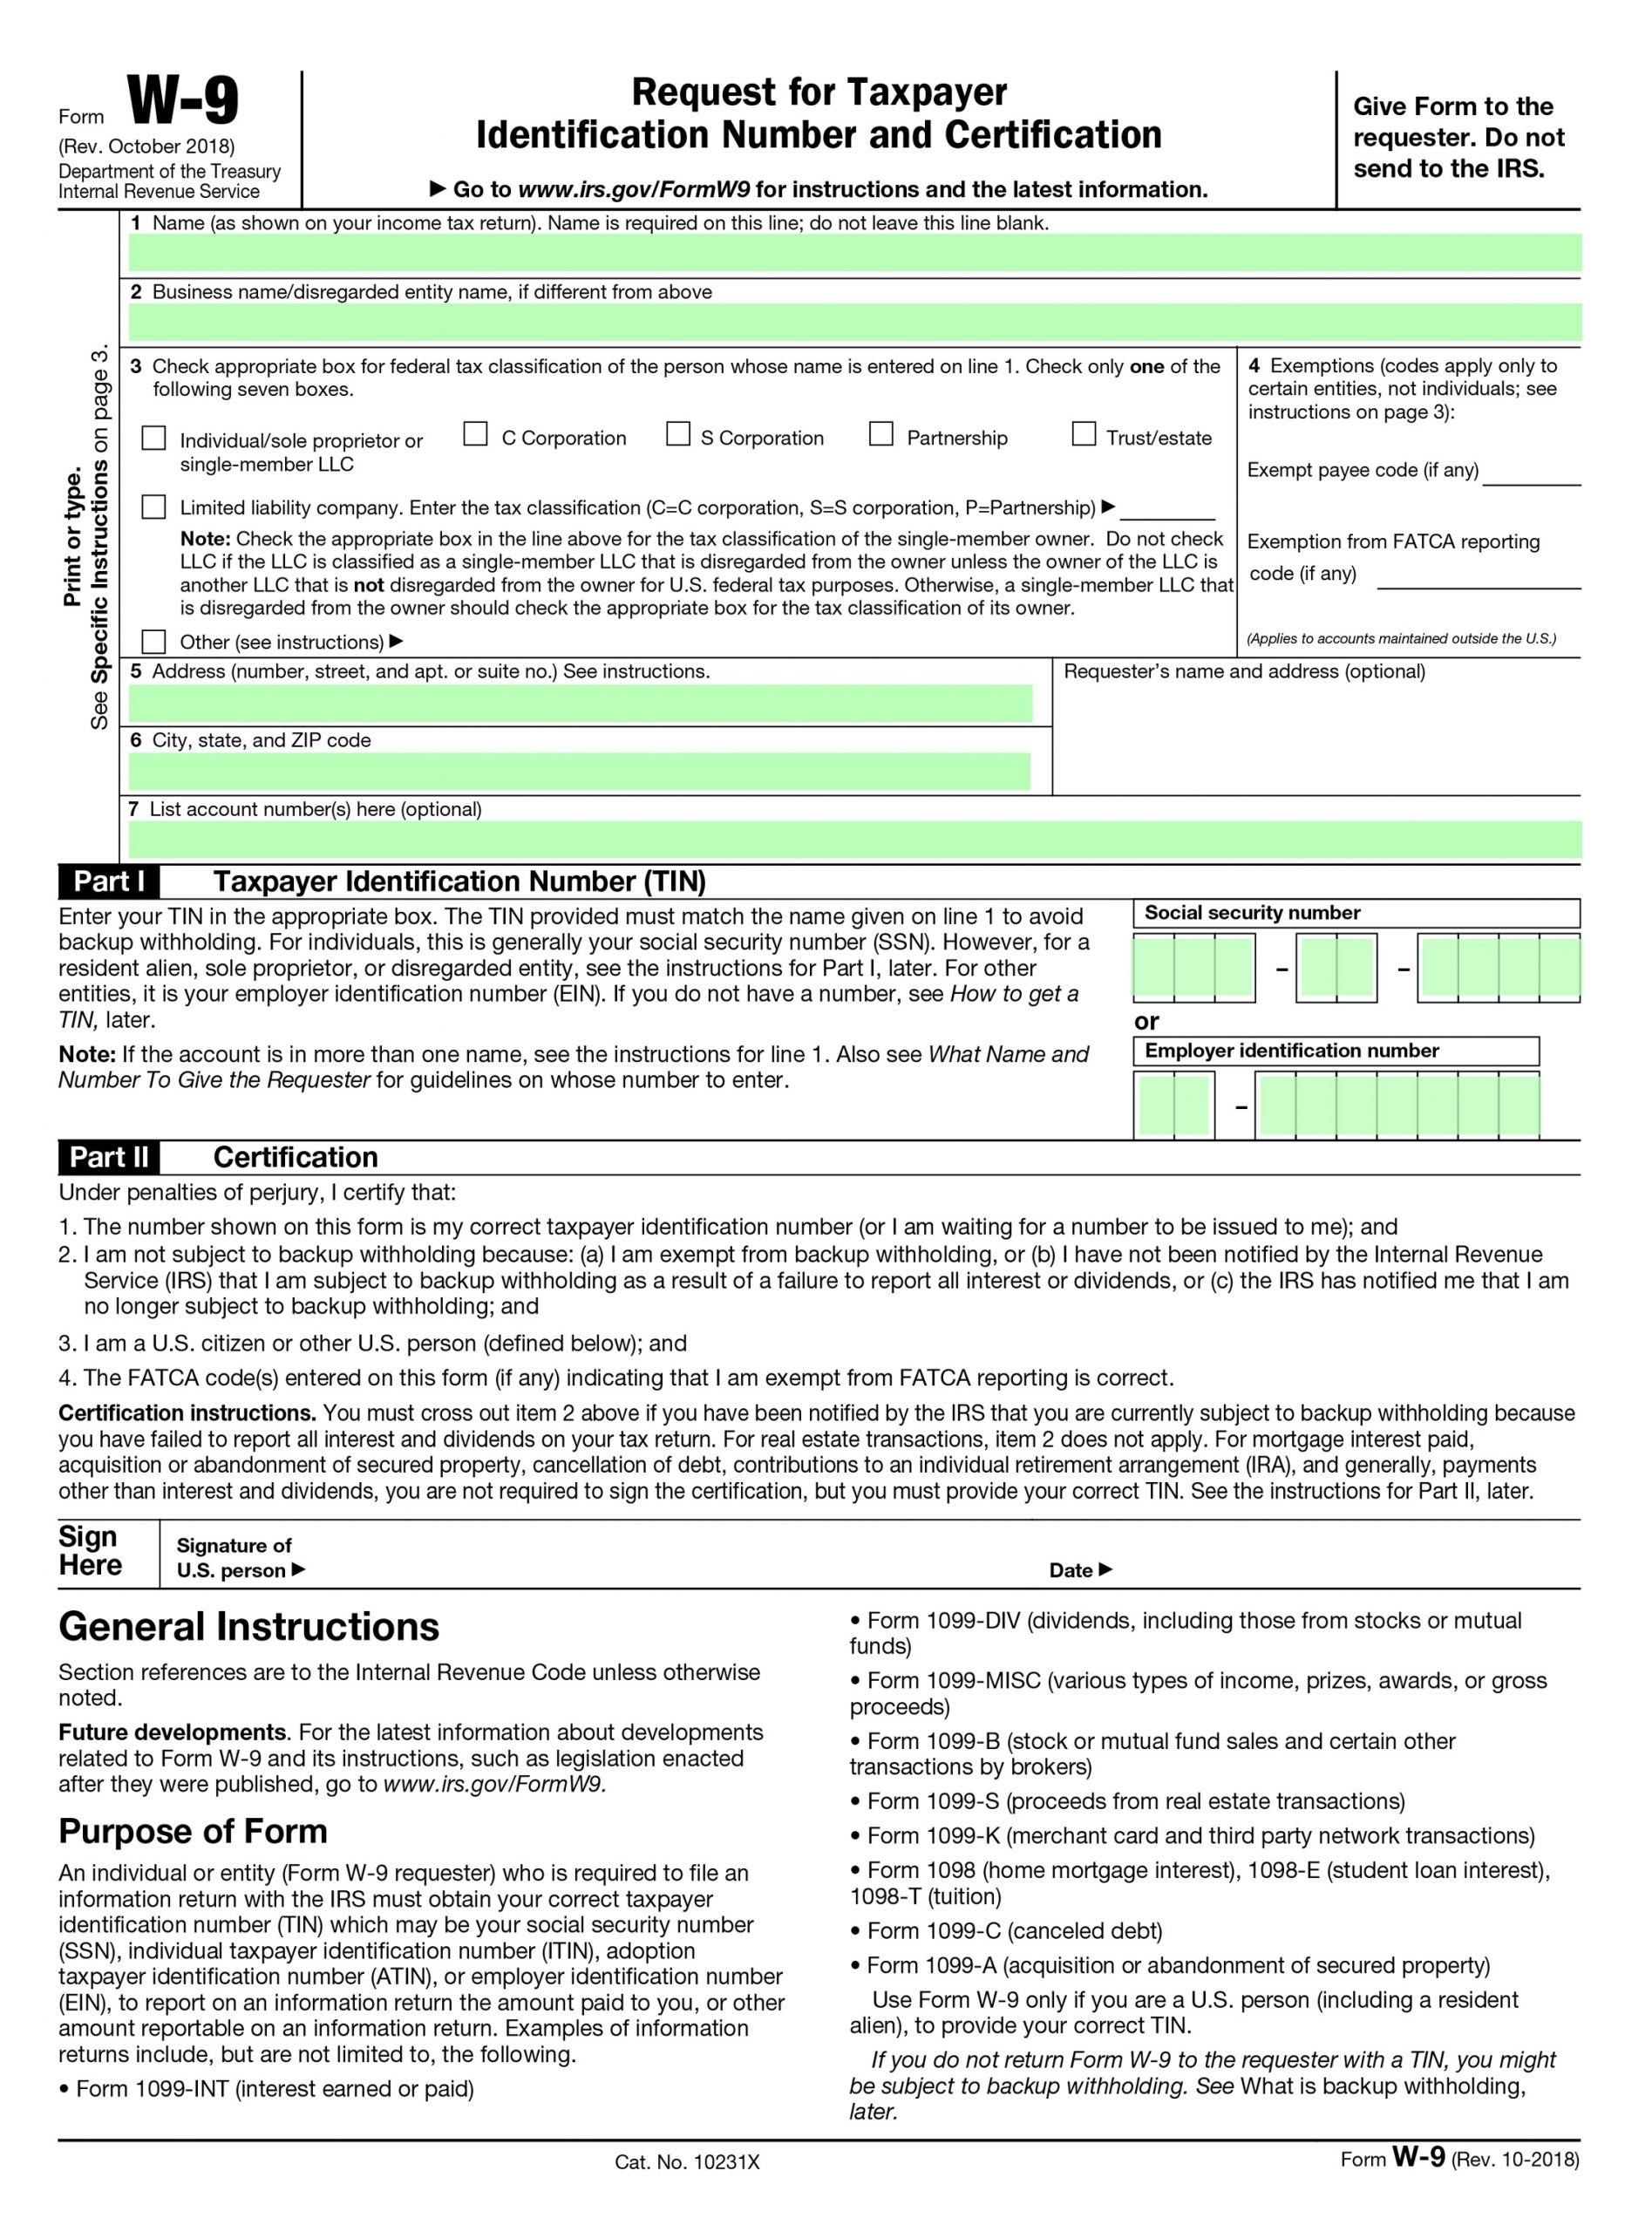 Filling Irs Form W-9 – Editable, Printable Blank | Fill Out-Blank W9 Forms 2020 Printable